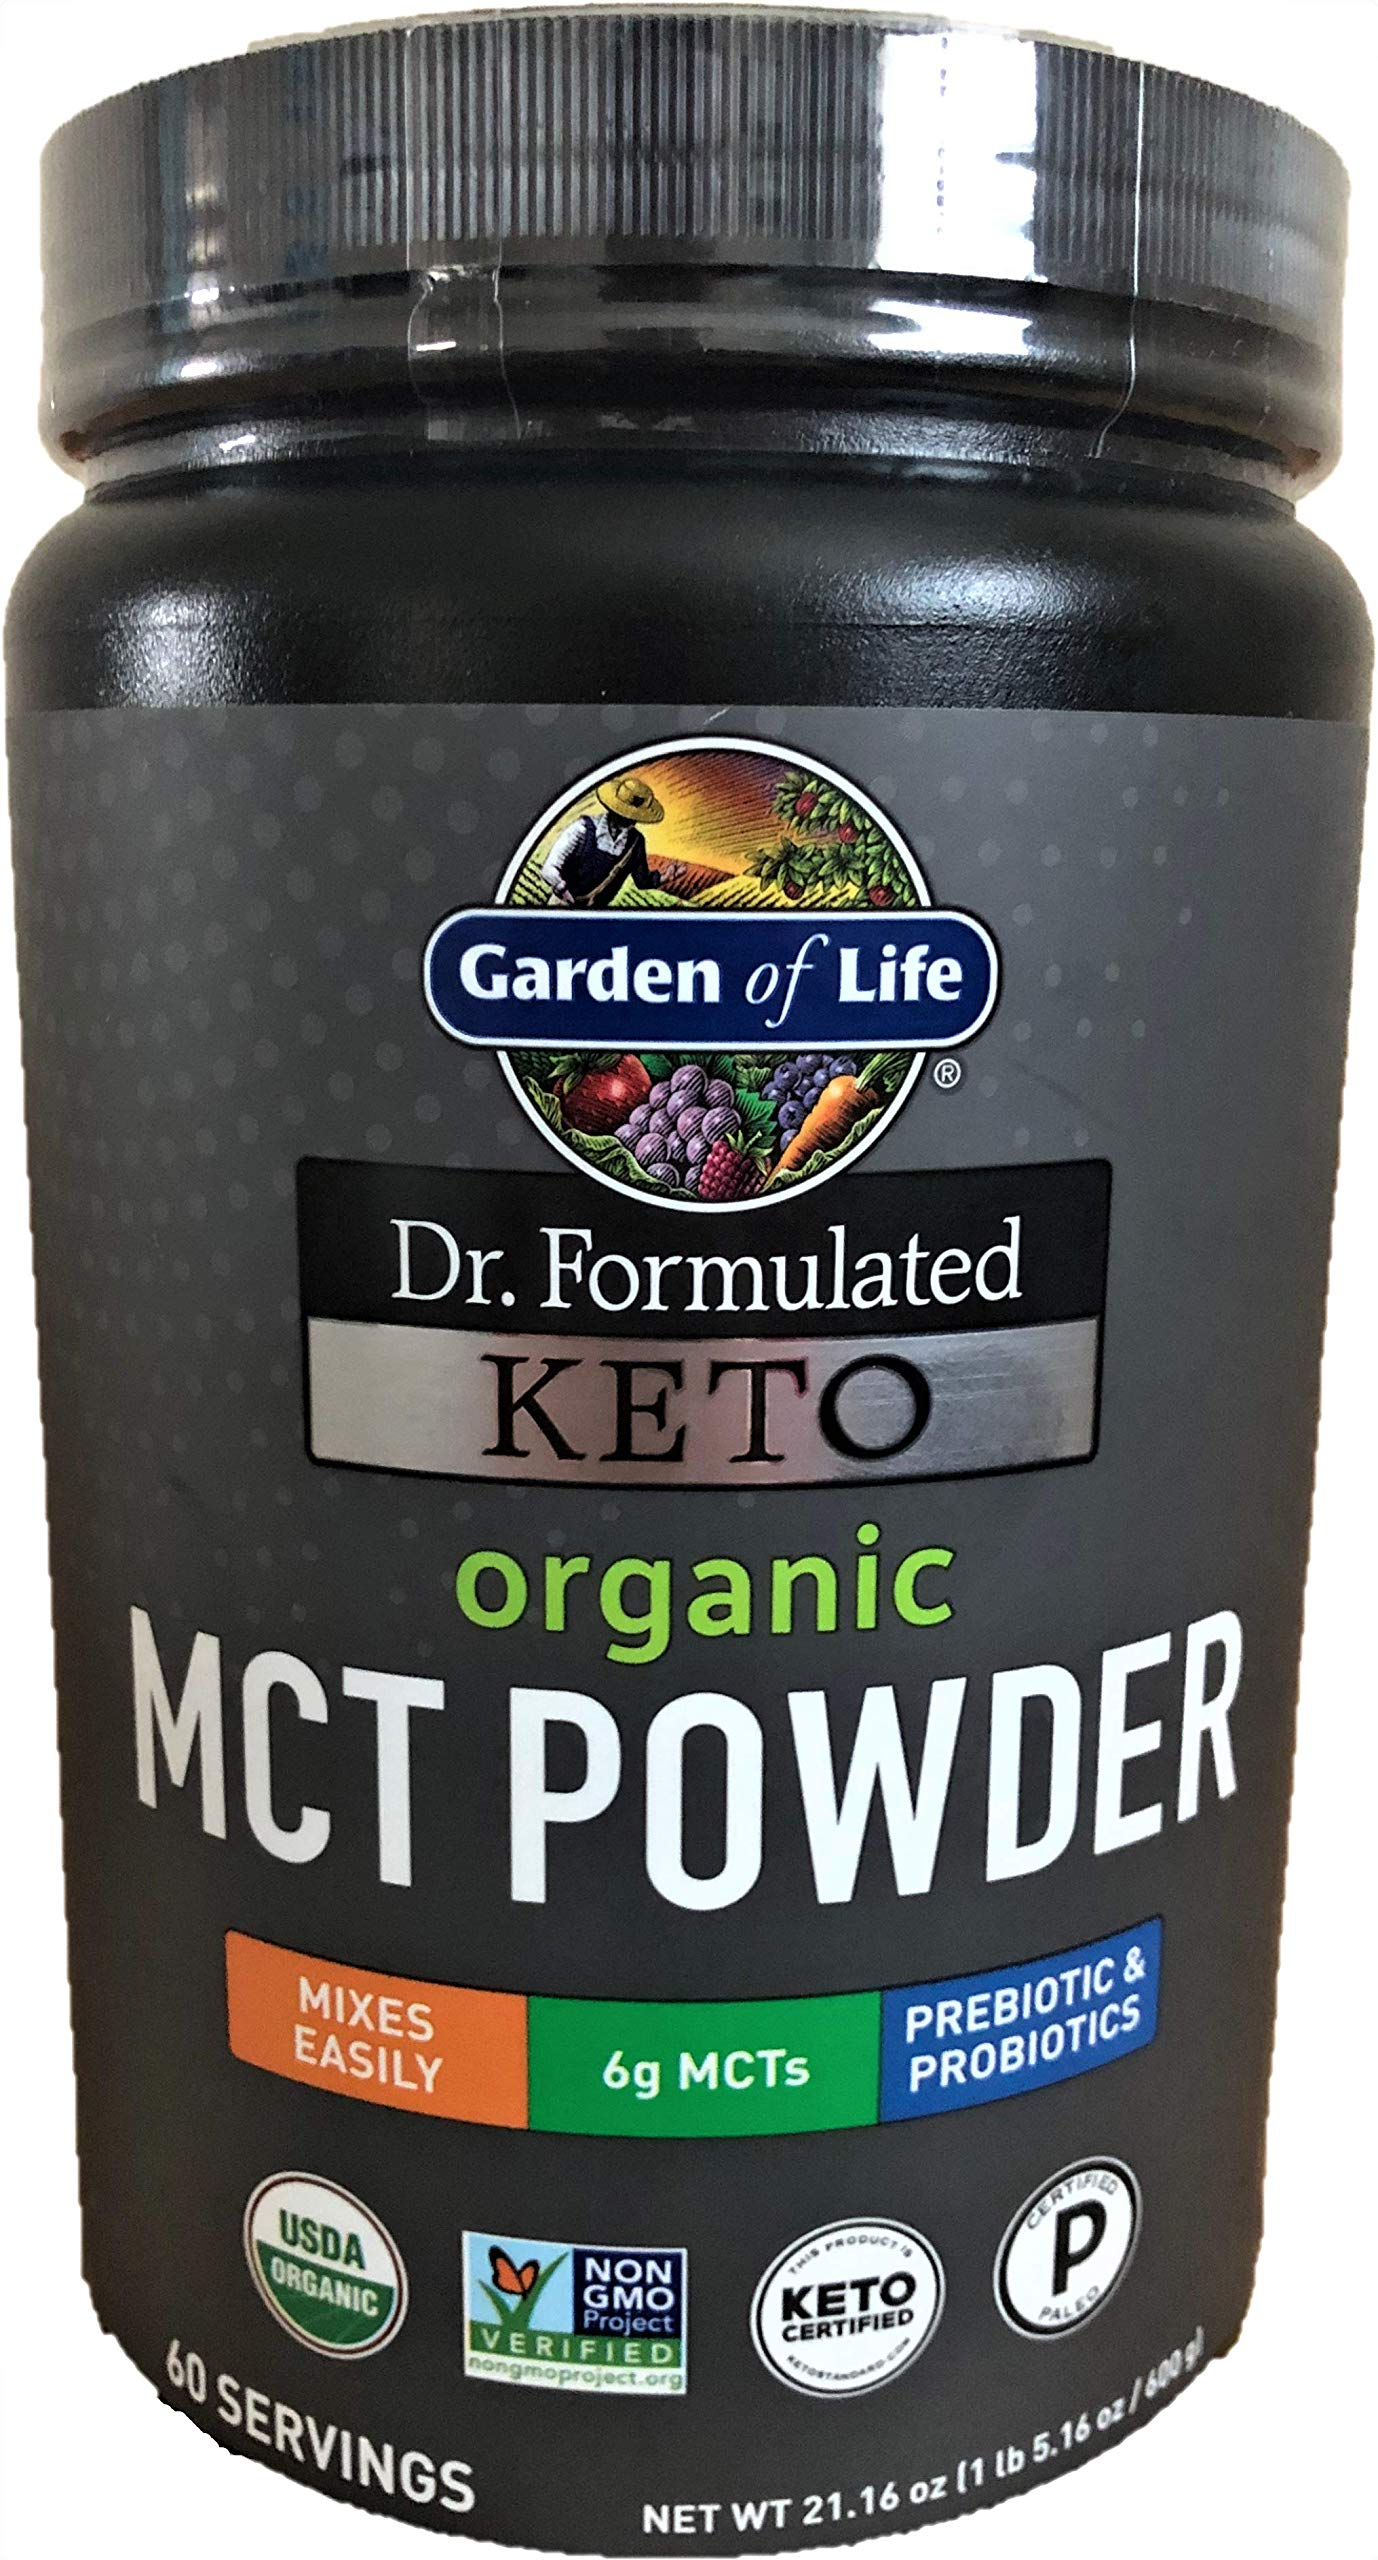 Garden of Life Dr. Formulated Keto Organic MCT Powder - 60 Servings, 6g MCTs from Coconuts Plus Prebiotic Fiber & Probiotics, Certified Organic, Non-GMO, Vegan, Gluten Free, Ketogenic & Paleo